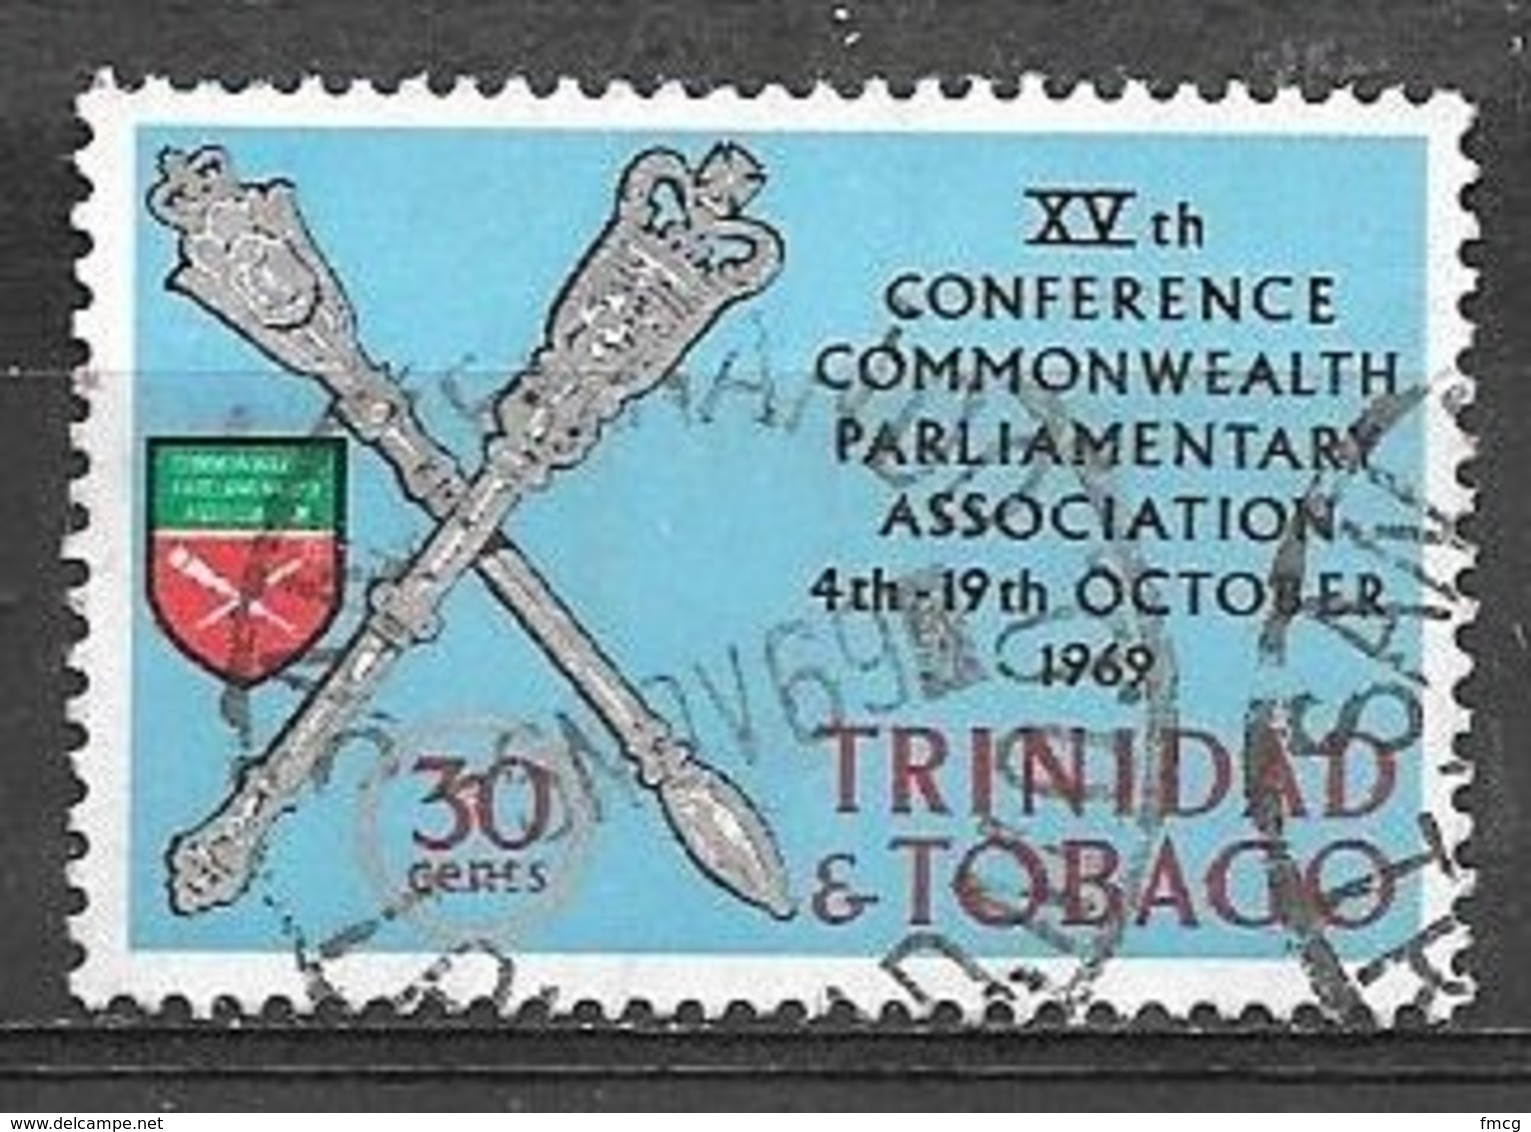 1969 30 Cents Conference Of Commonwealth Parliamentary Association, Used - Trinidad & Tobago (1962-...)